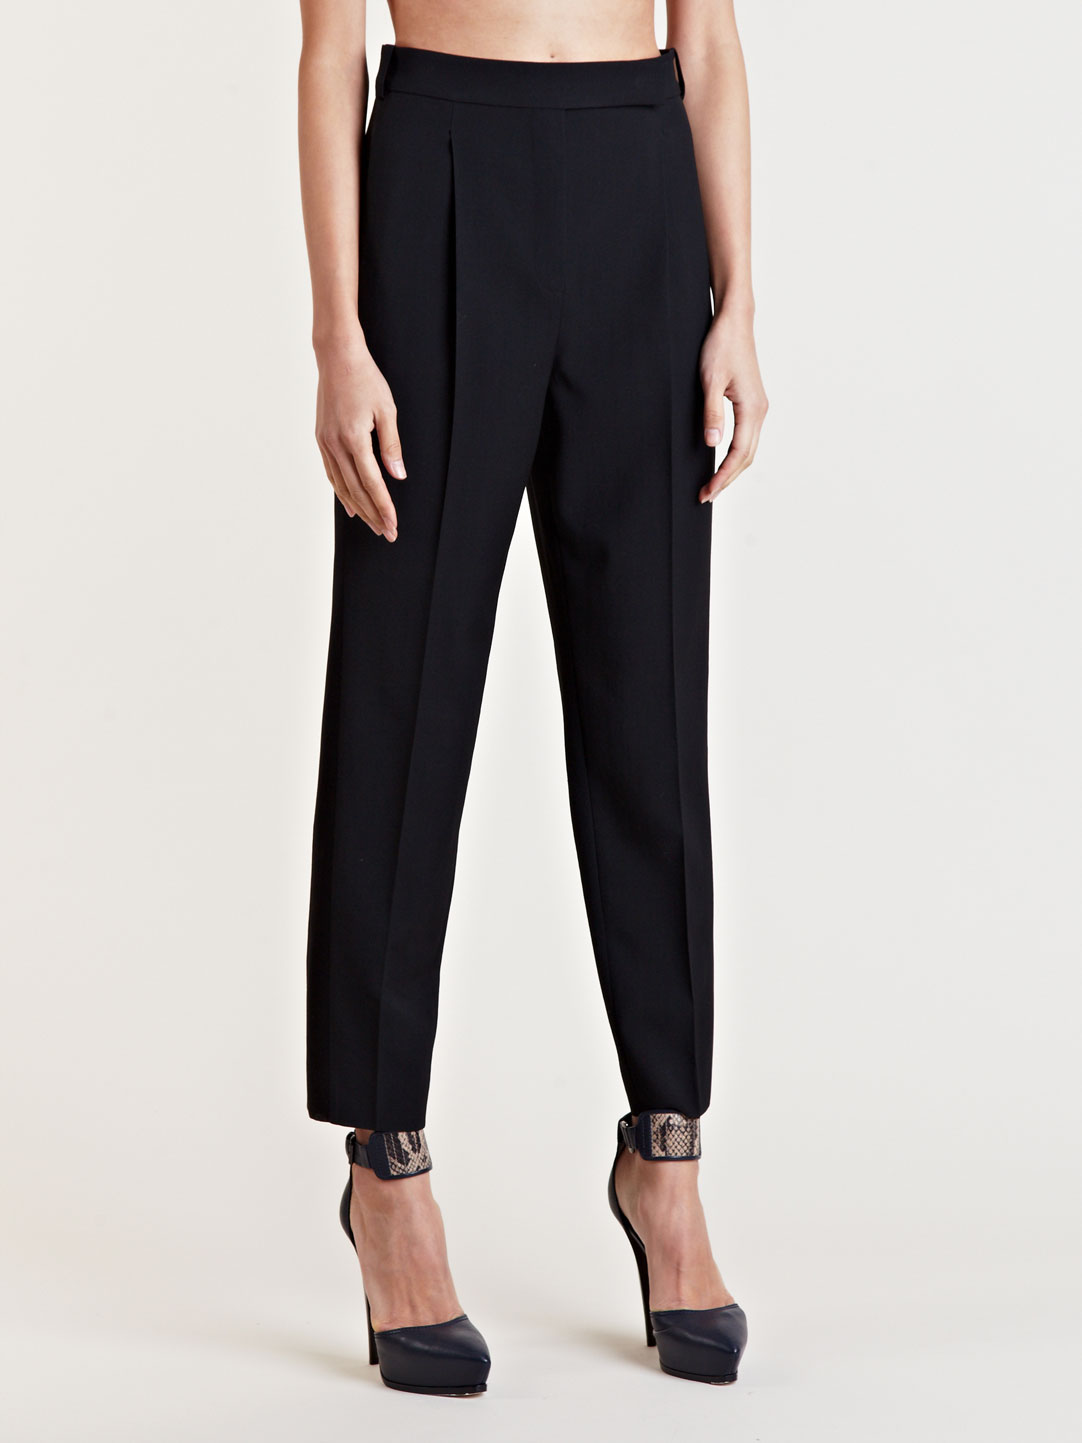 Women's staple office trousers for an elevated attire. Shop smart black trousers for an elegant office look. Next day delivery and free returns available. Tailored (4) Bootcut (3) Ankle Slim (1) Fashion (1) High Leg (1) View More. Use. Workwear () Casual (38) Occasionwear (8) Made With.